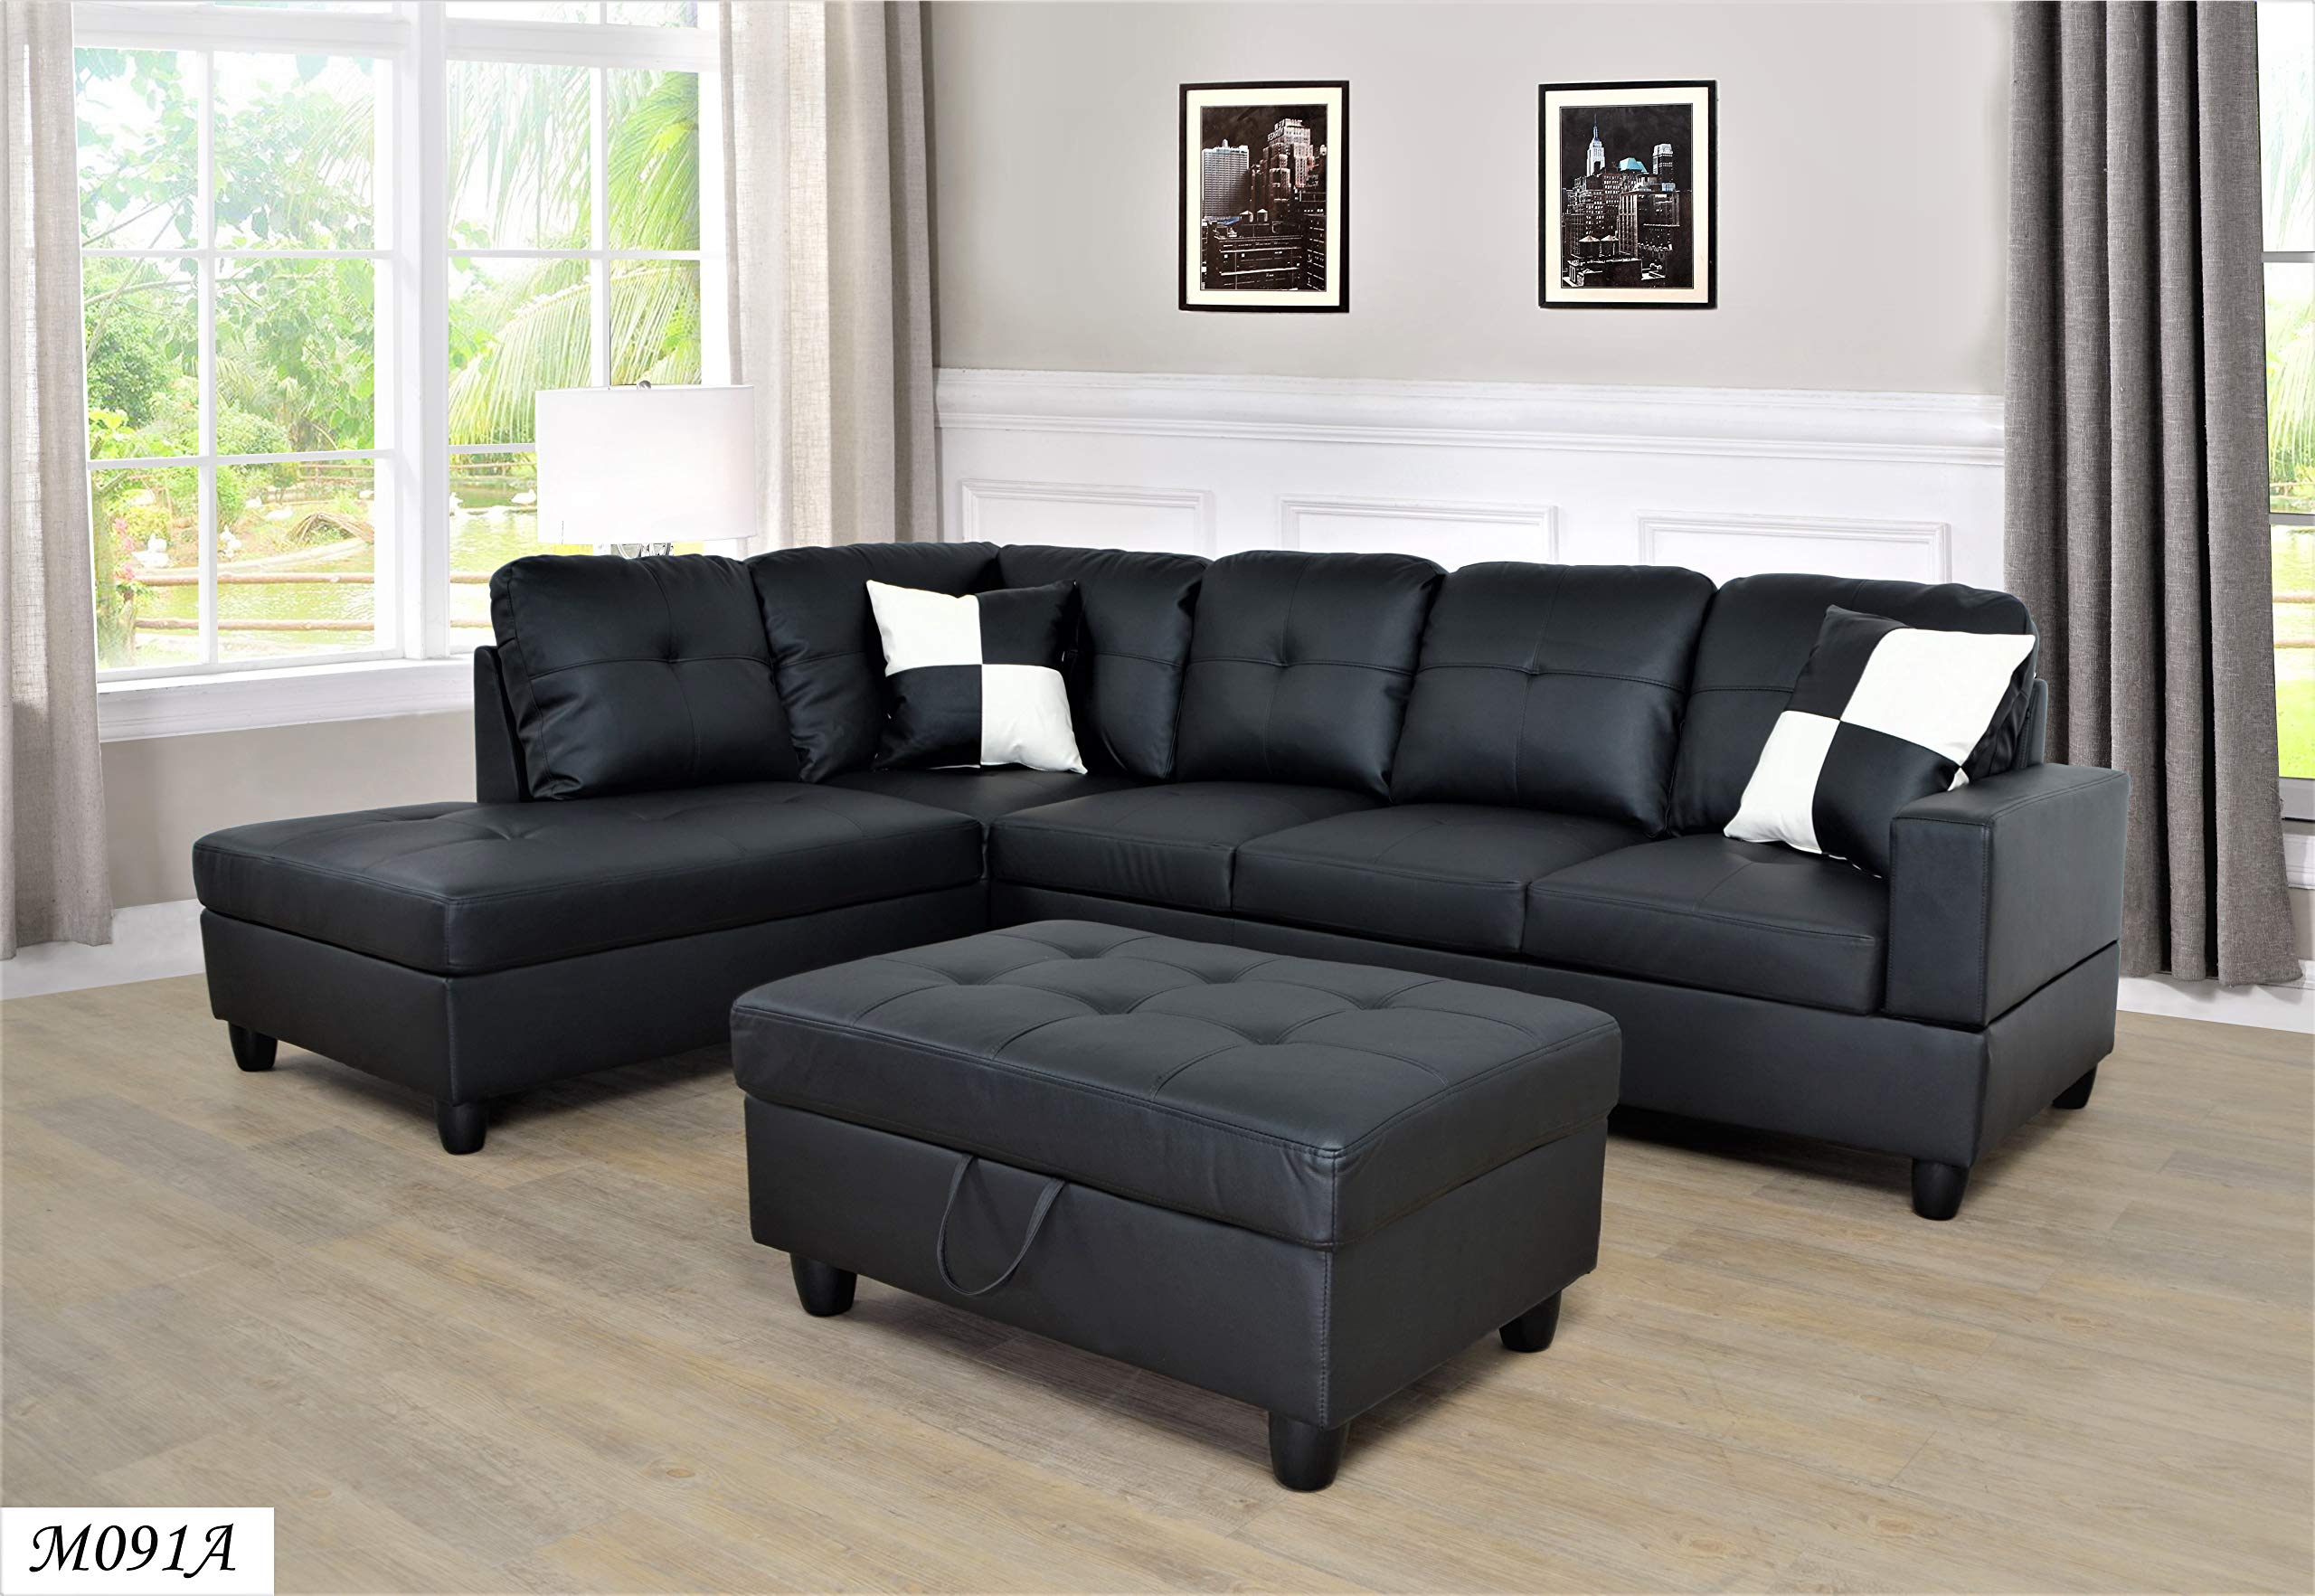 Lifestyle Facing Left Chaise 3PC Sectional Set by Mega Brands